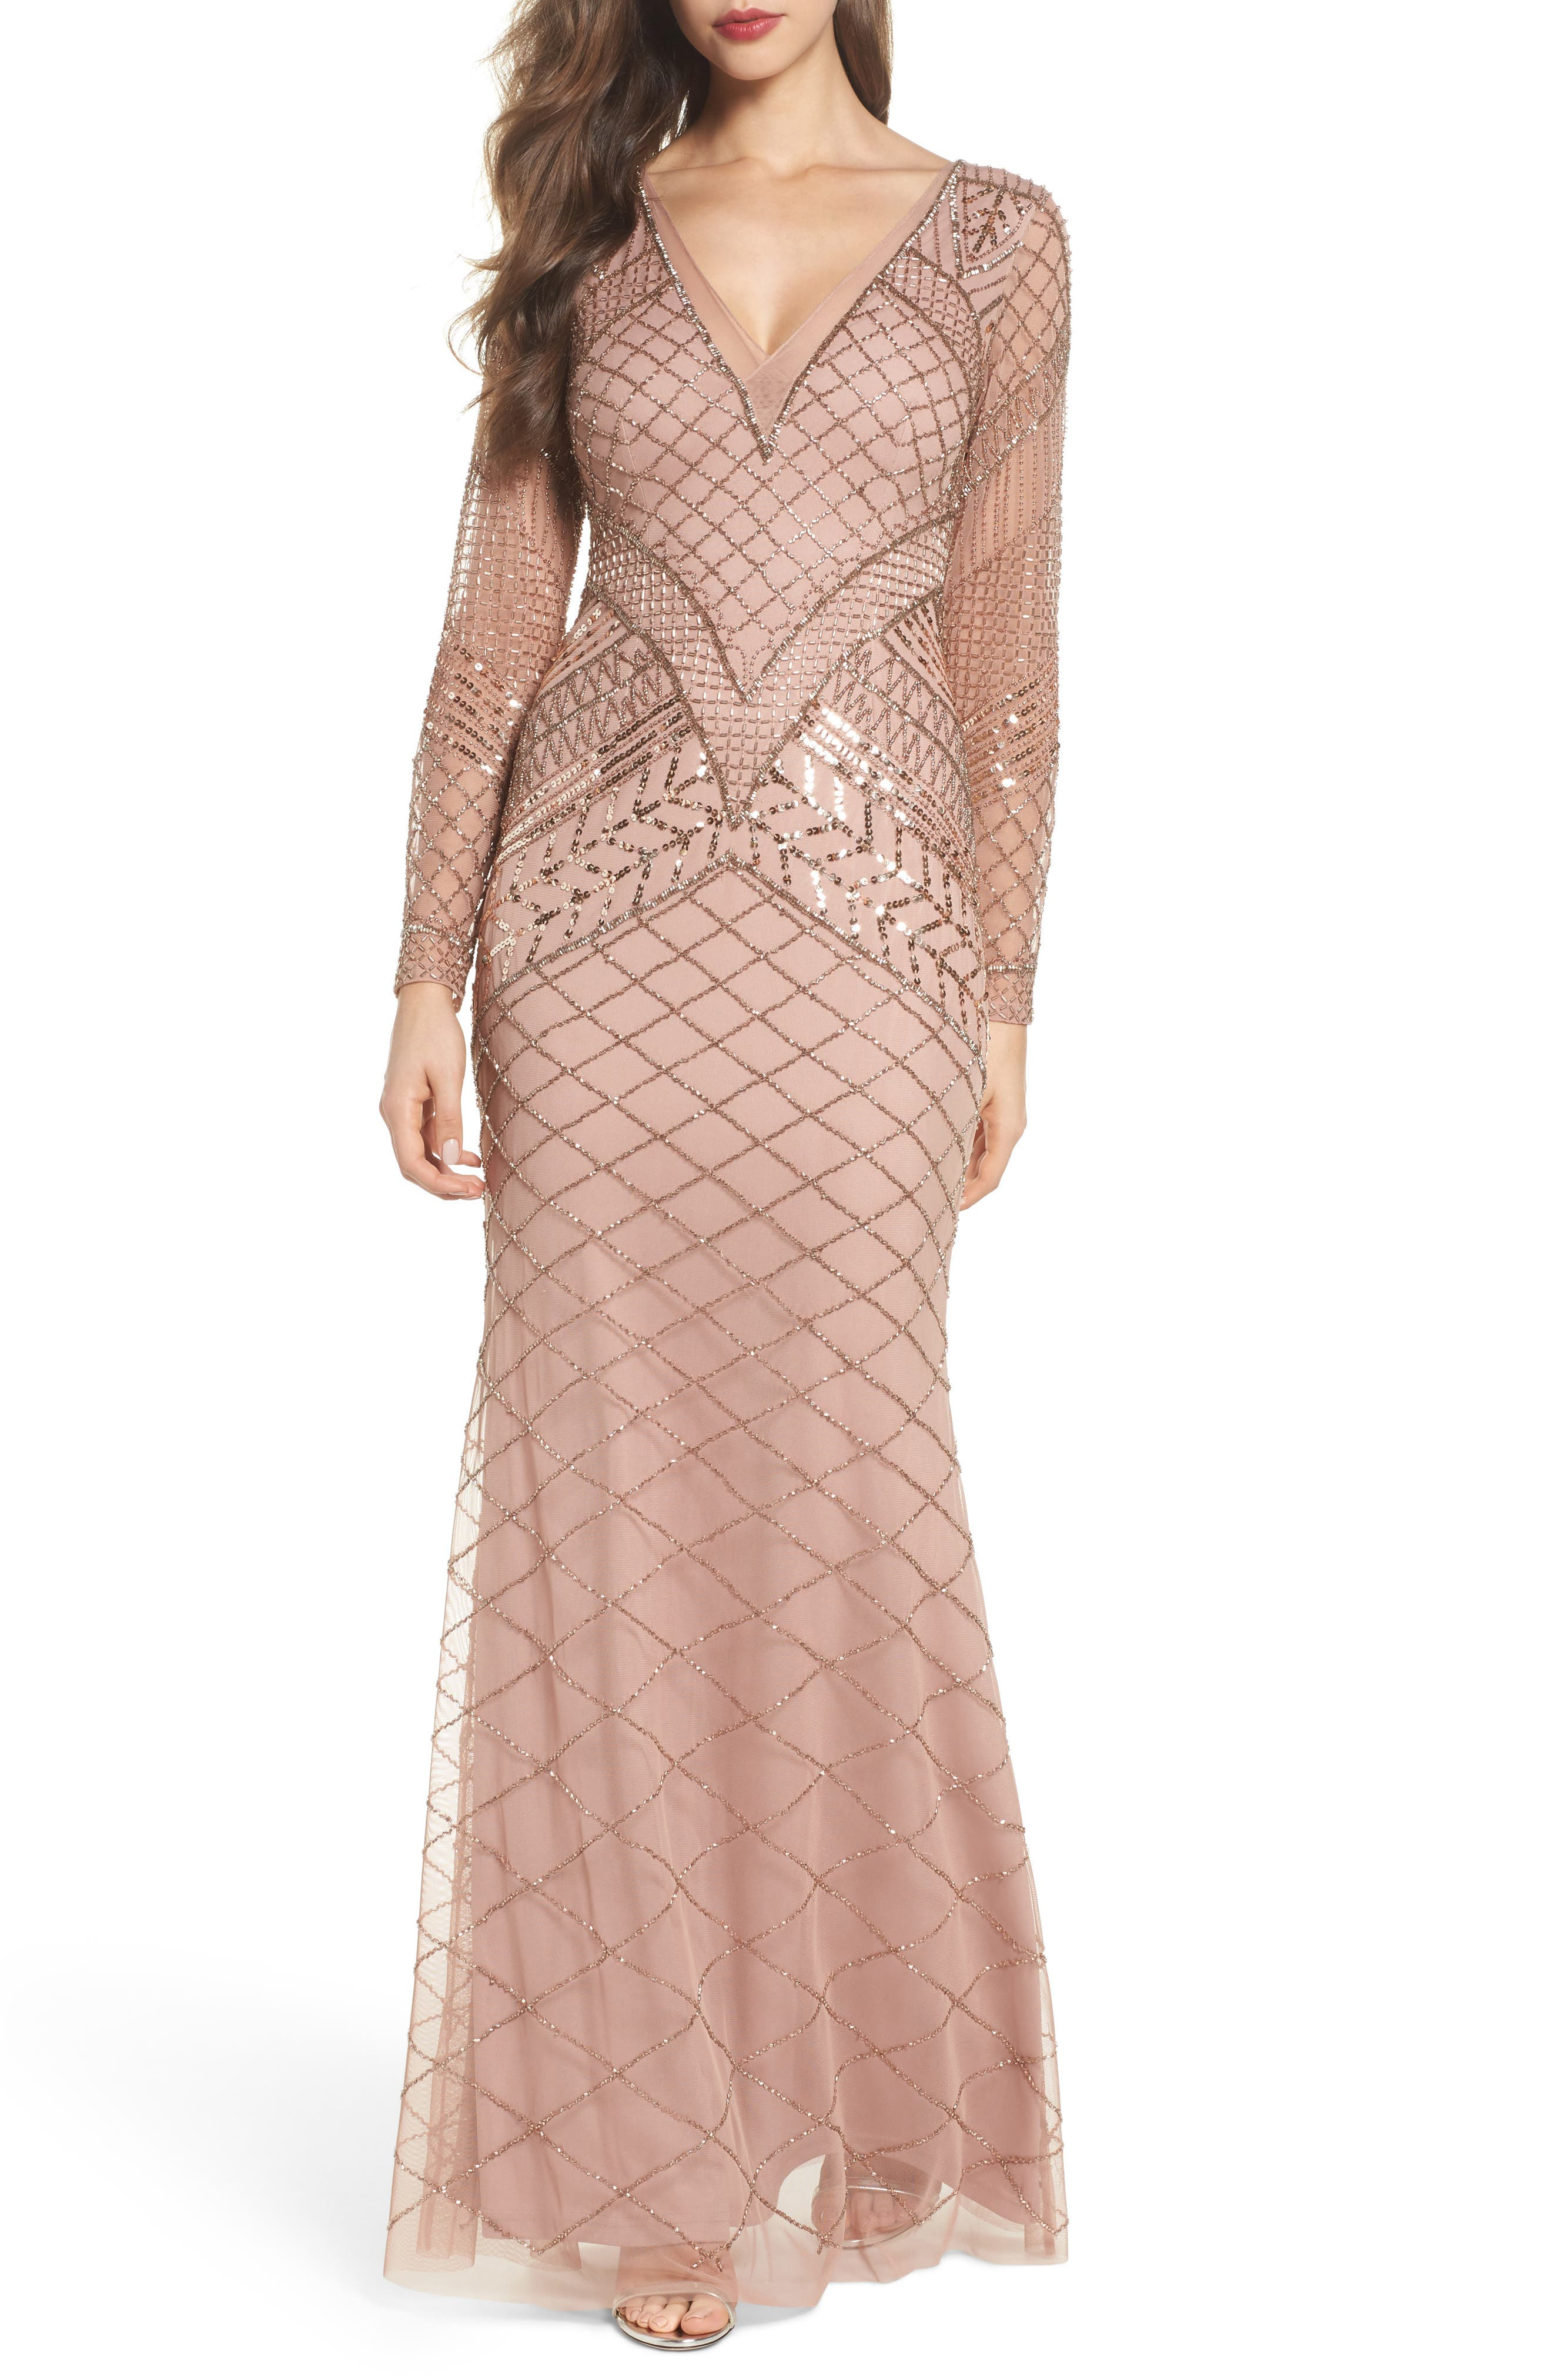 Alternate Image 1 Selected - Adrianna Papell Embellished Mermaid Gown